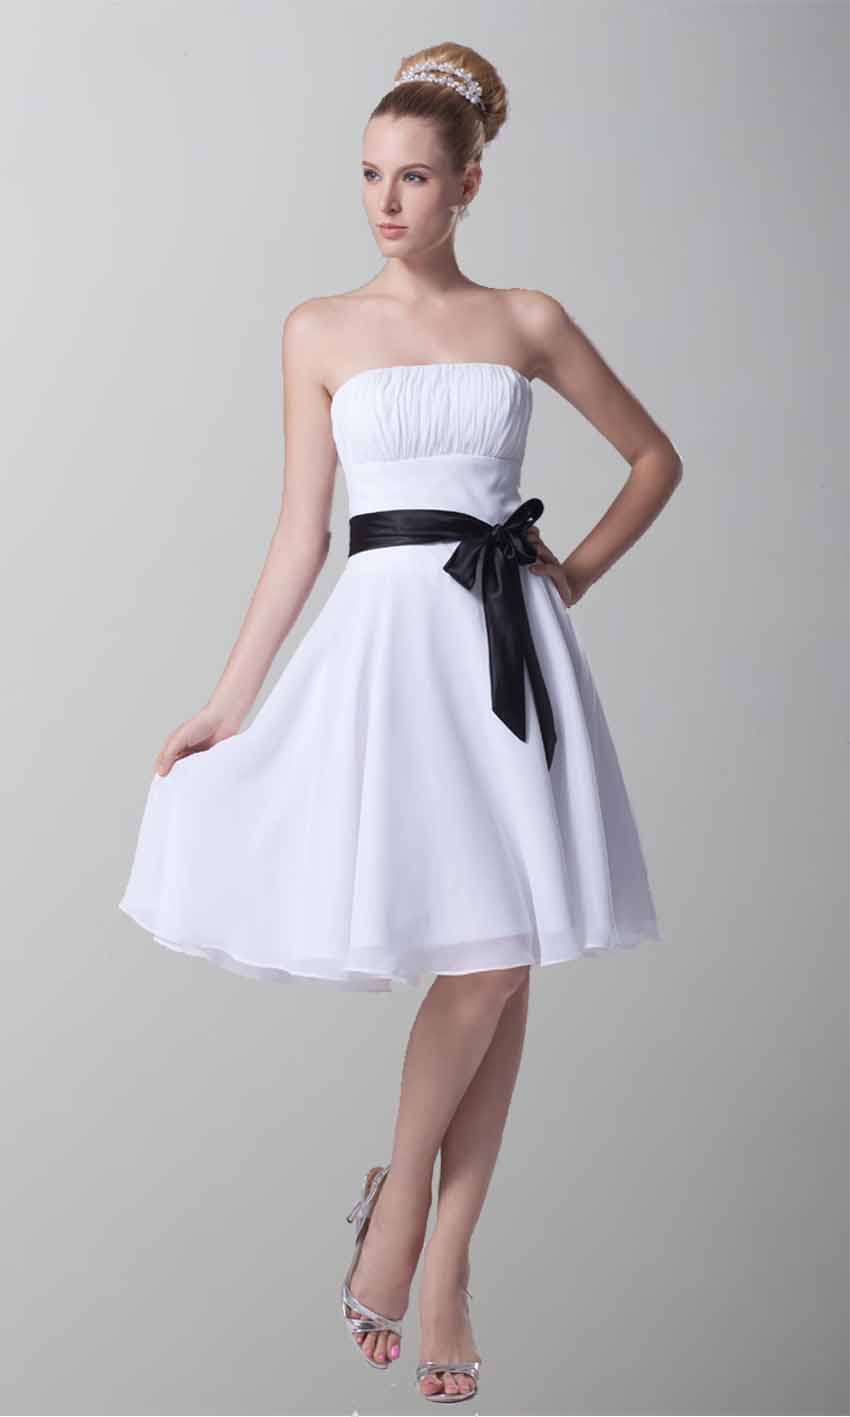 Classic Short Strapless White Belt Bridesmaid Dresses KSP218 [KSP218] - £94.00 : Cheap Prom Dresses Uk, Bridesmaid Dresses, 2014 Prom & Evening Dresses, Look for cheap elegant prom dresses 2014, cocktail gowns, or dresses for special occasions? kissprom.co.uk offers various bridesmaid dresses, evening dress, free shipping to UK etc.